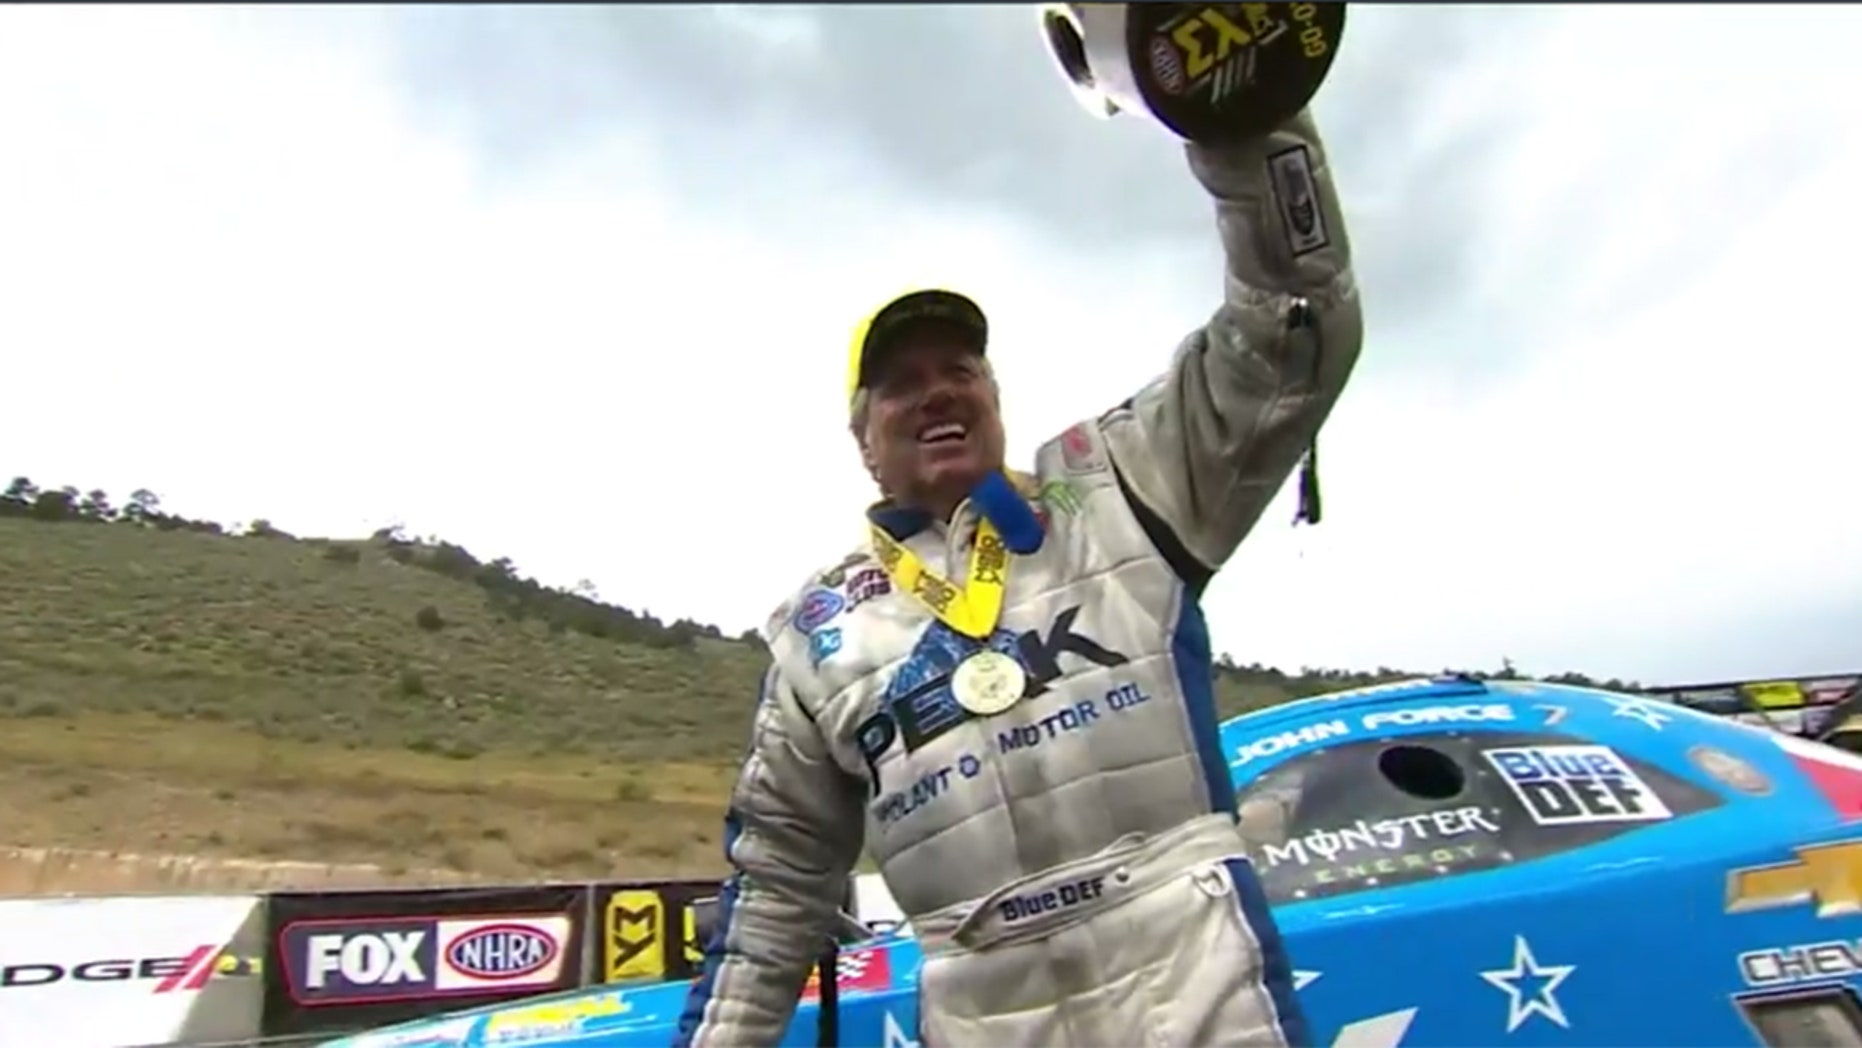 John Force set a new record for oldest person to win an NHRA Funny Car race with his victory at the Dodge Mile-High Nationals in Colorado on Sunday.